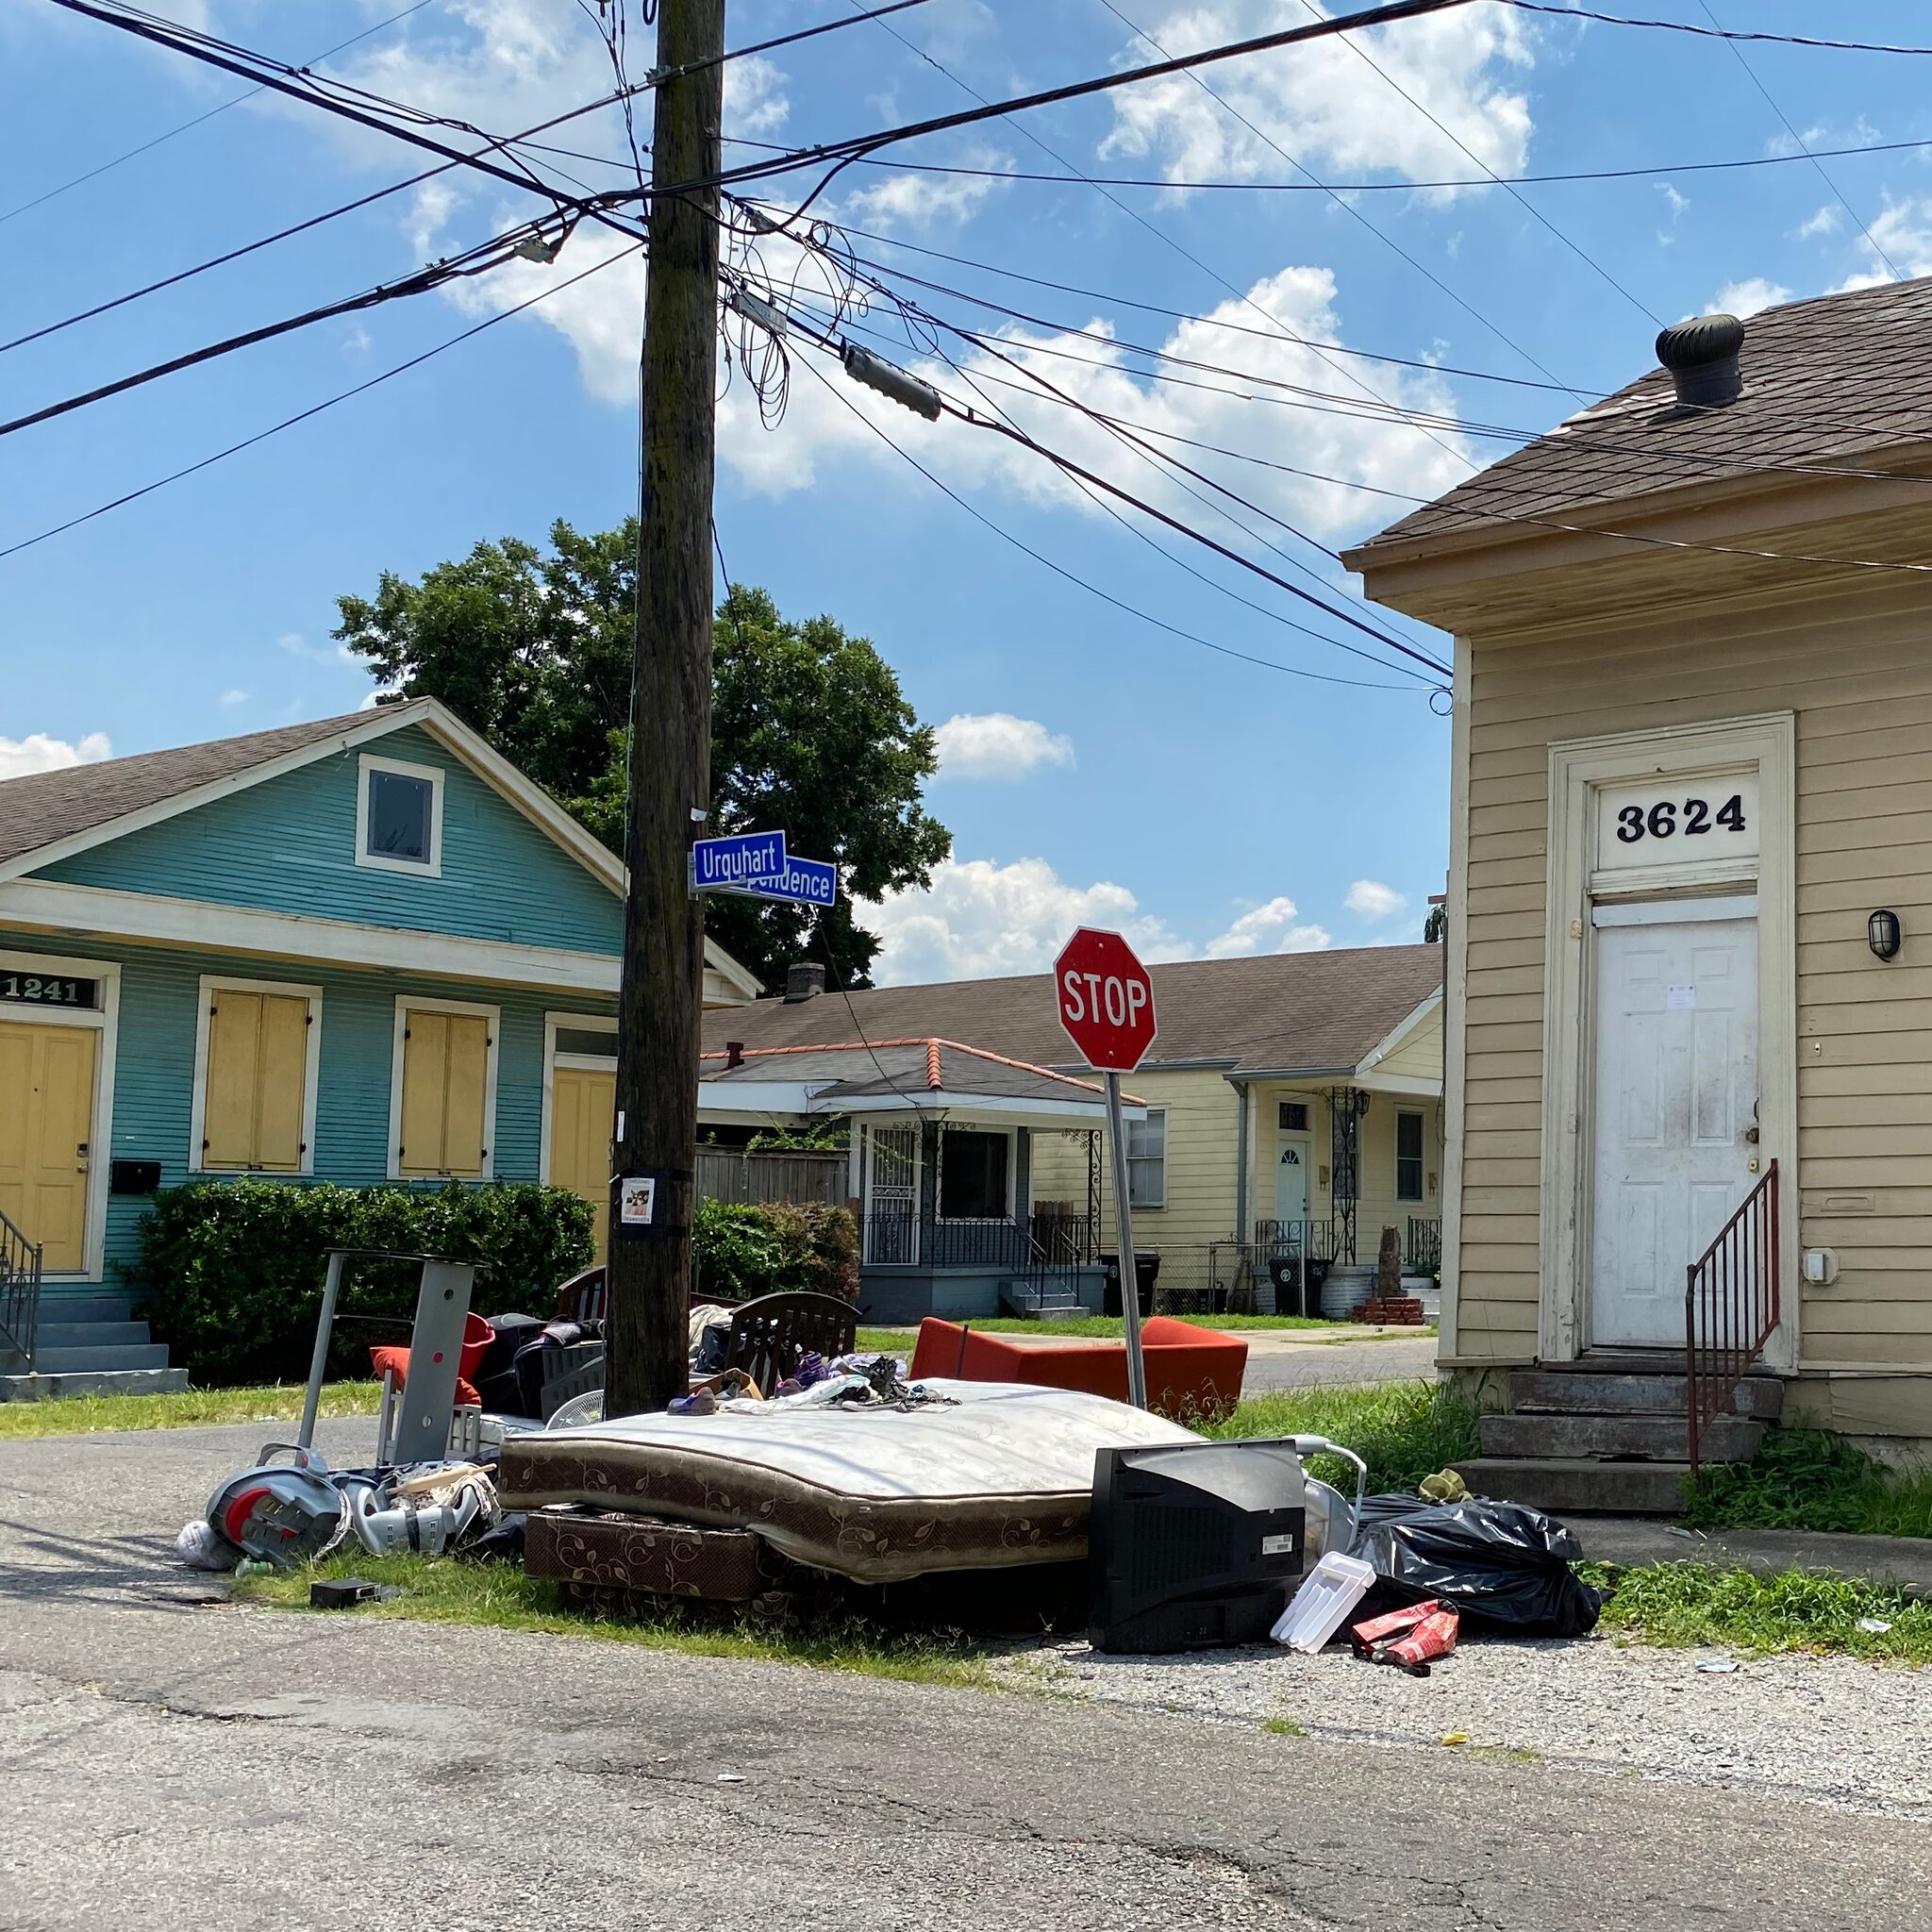 A pile of household items and belongings on the side of the road.